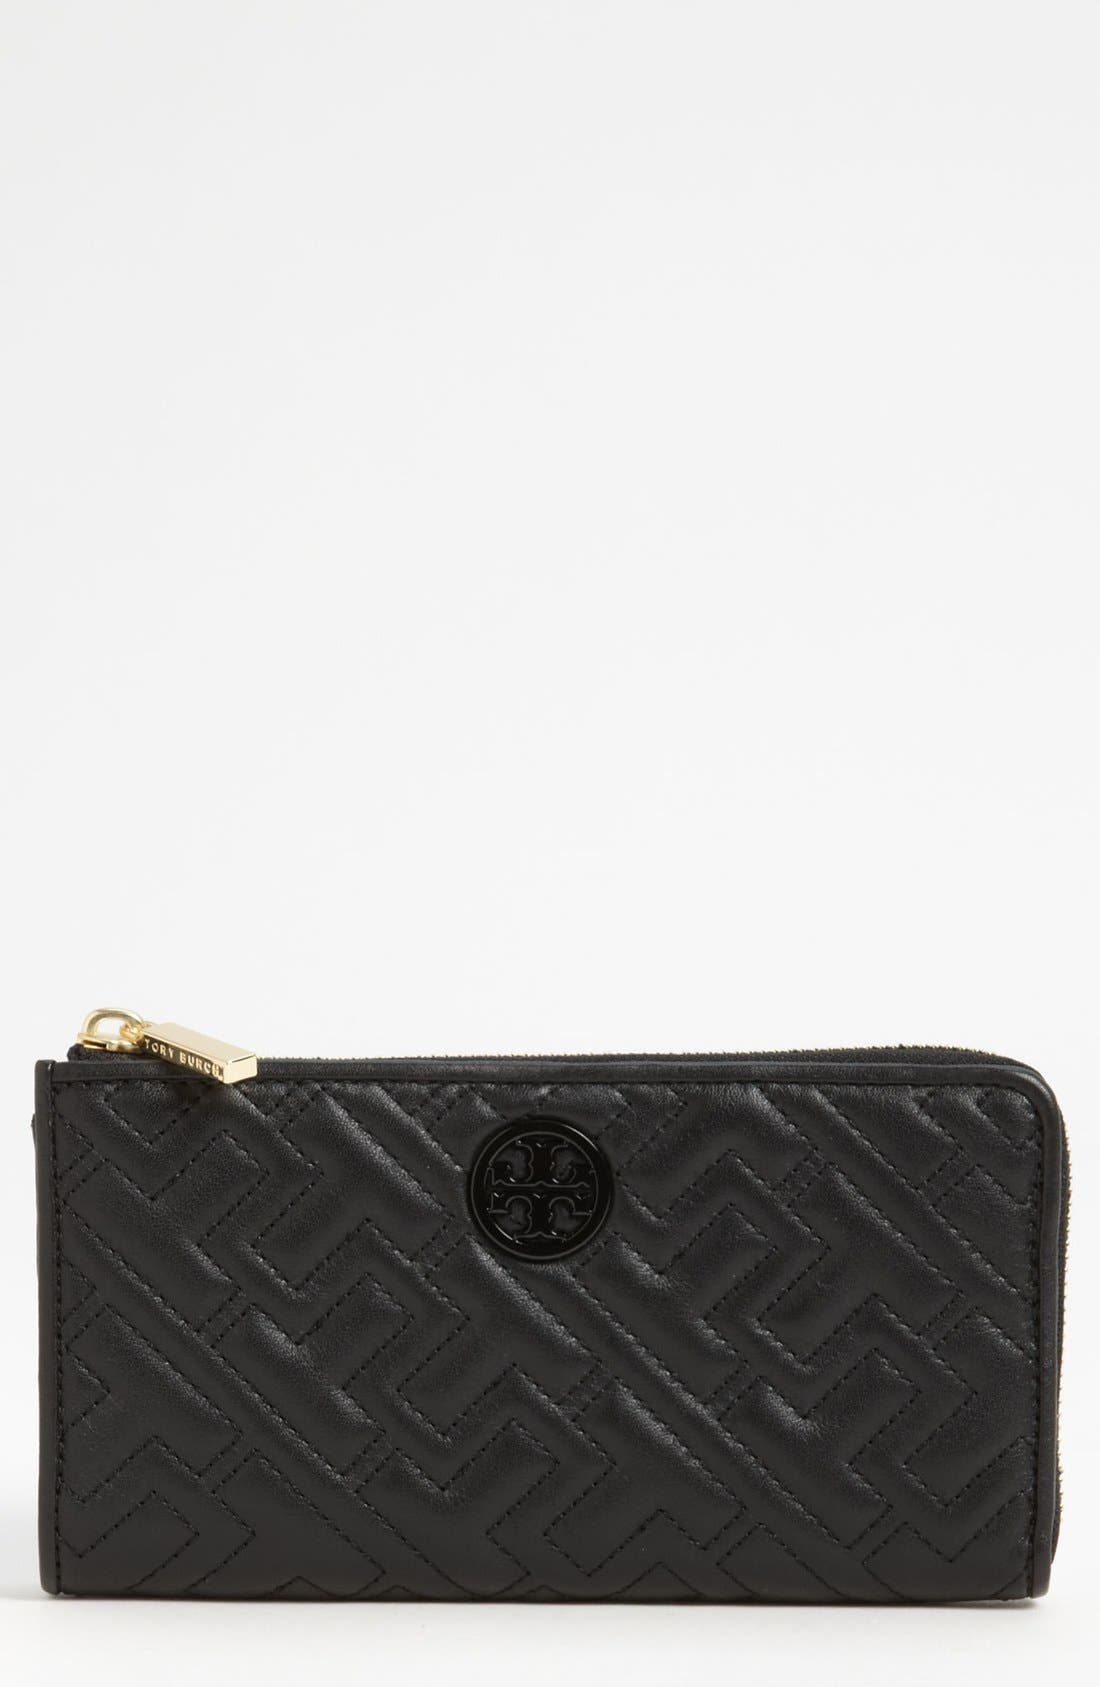 Alternate Image 1 Selected - Tory Burch Quilted Logo Leather Wallet